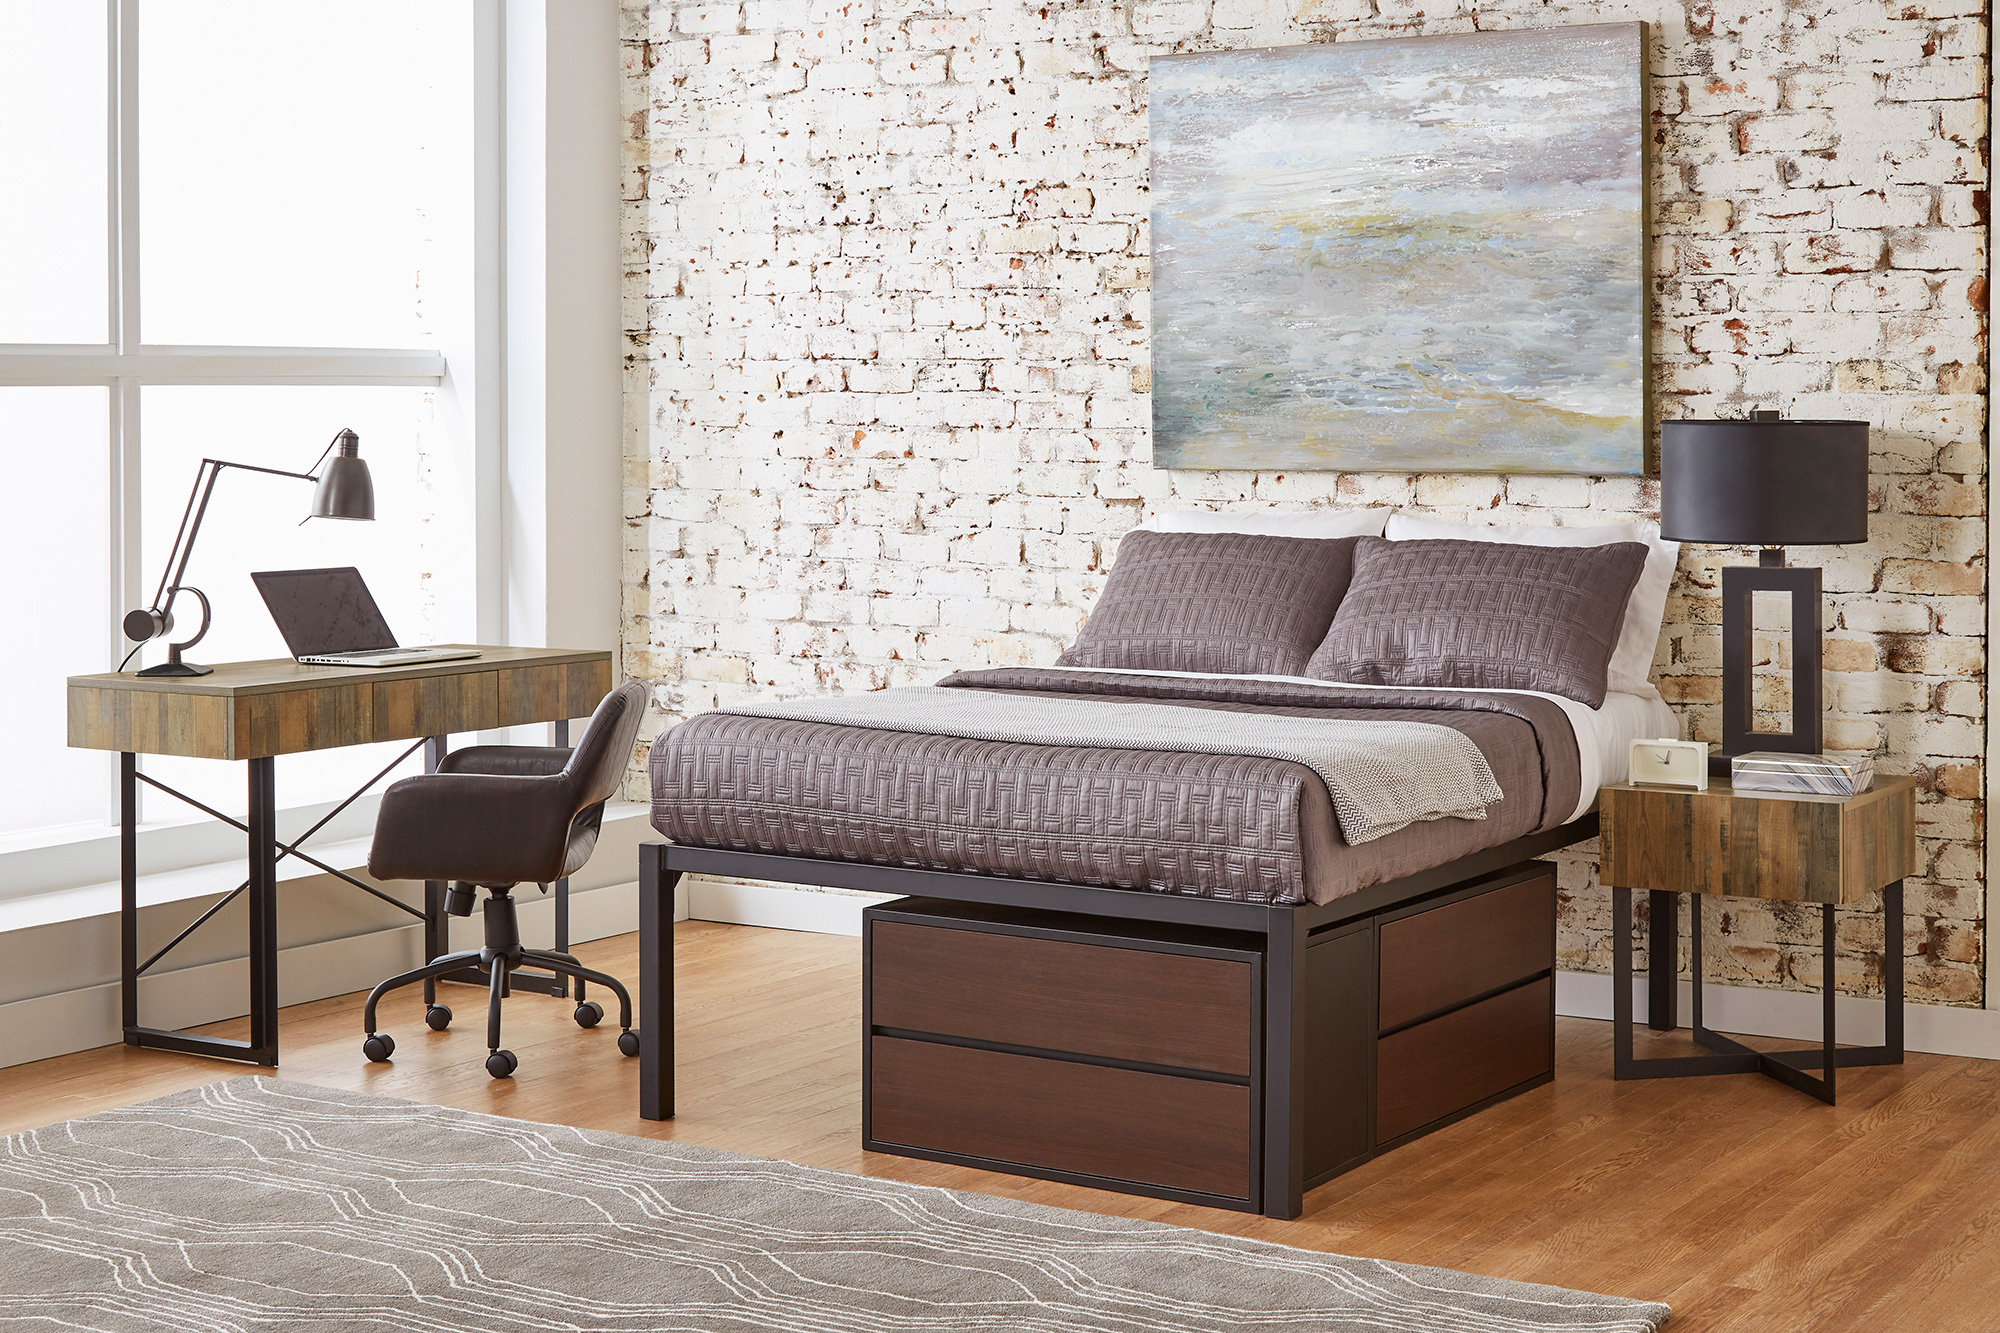 F3 NOLA bedroom furniture for student housing